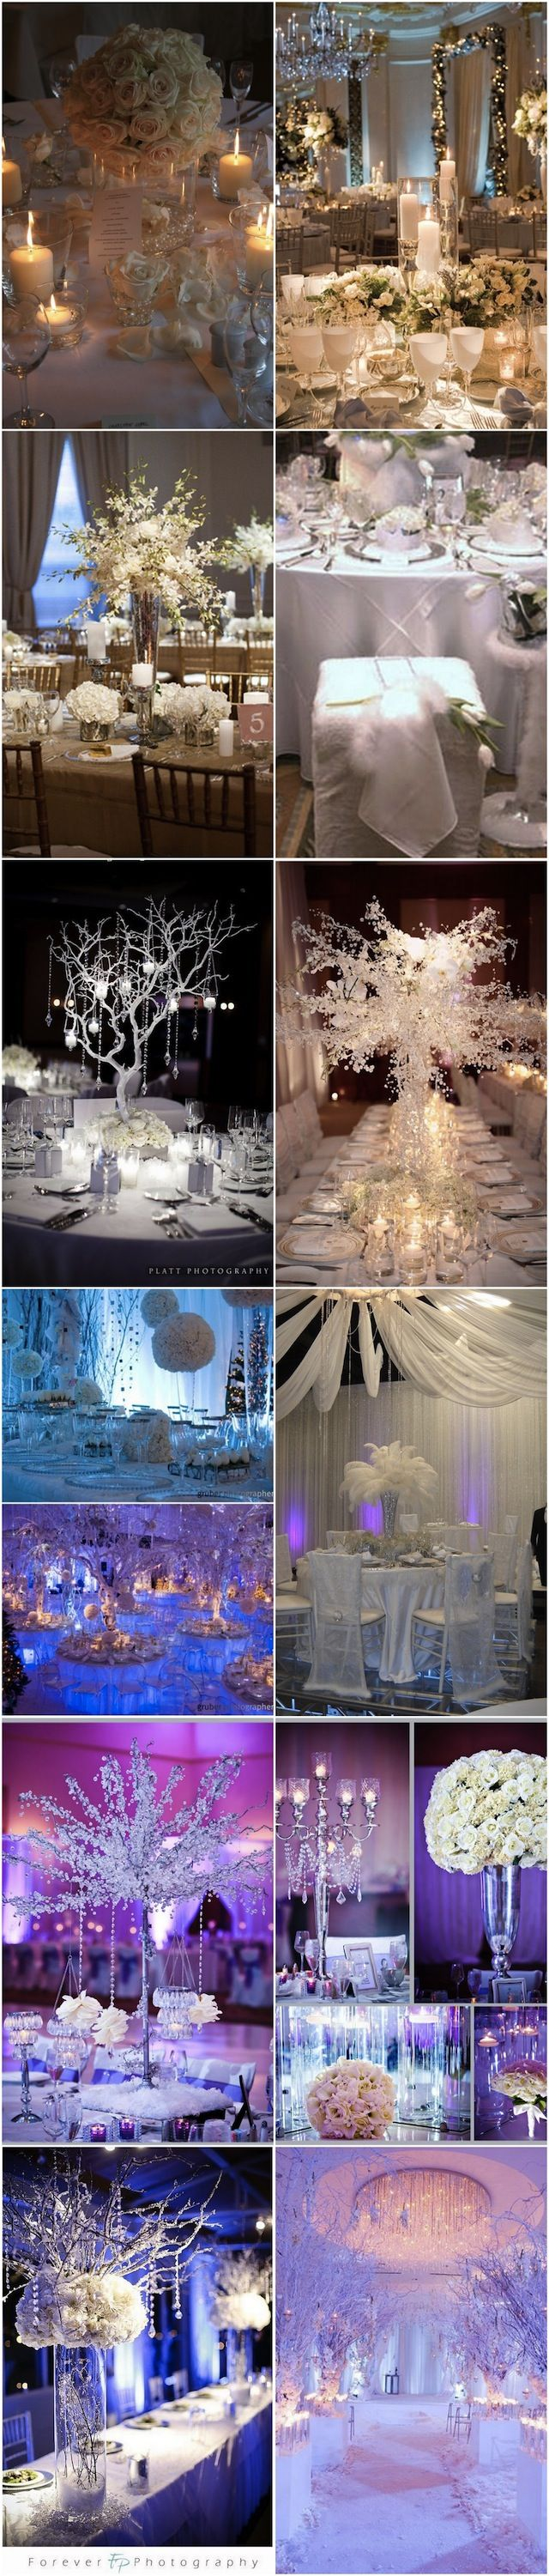 Lovely white tablescapes